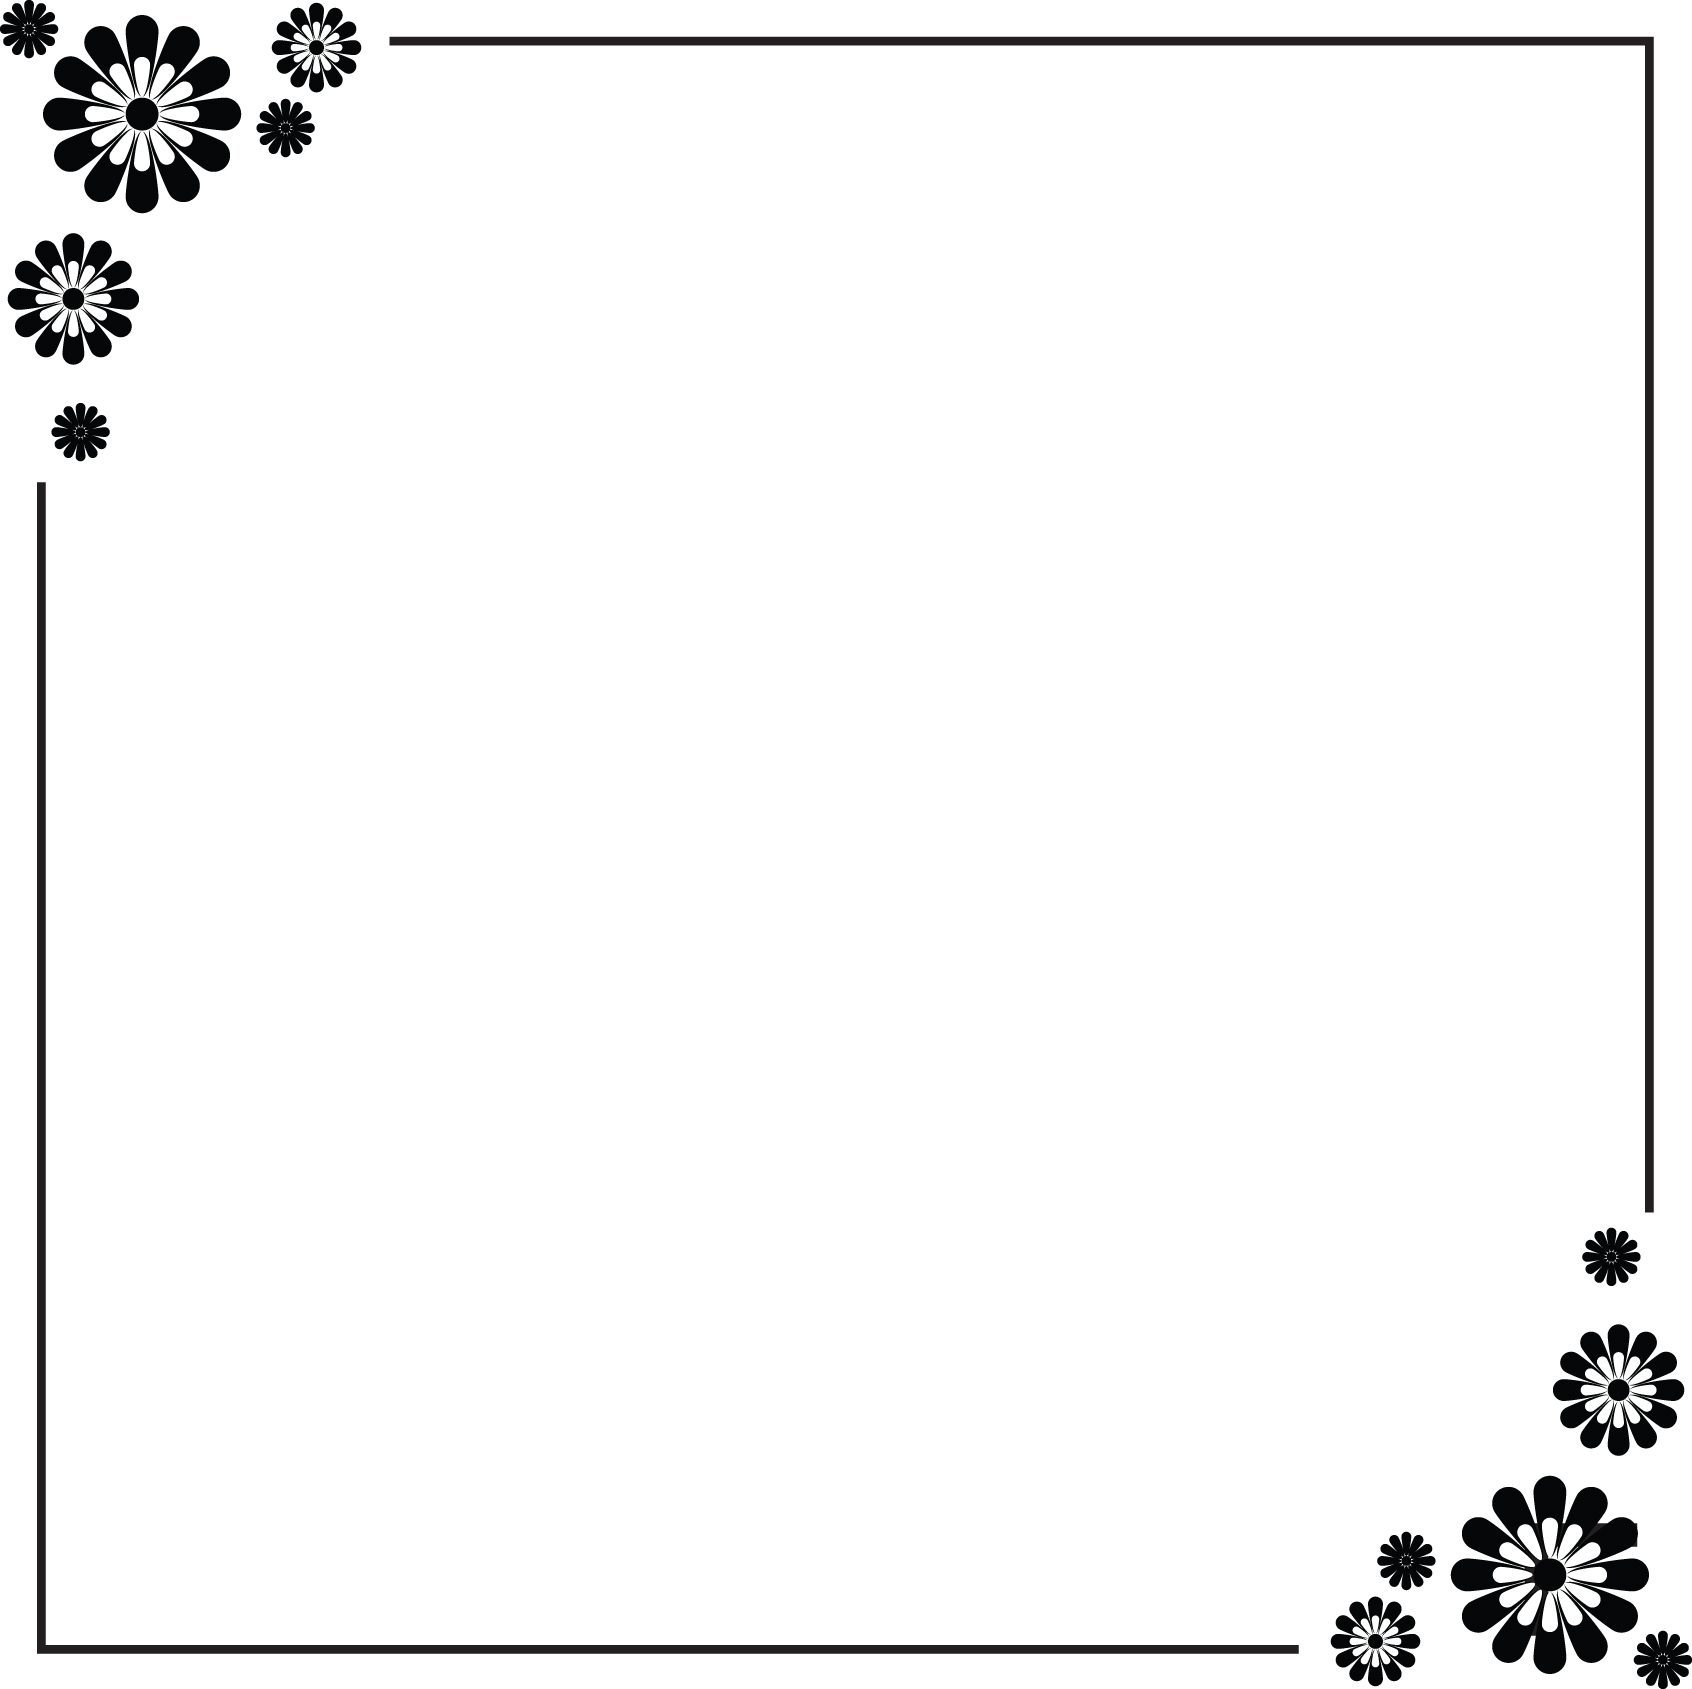 Simple Flower Border Designs For A4 Paper.